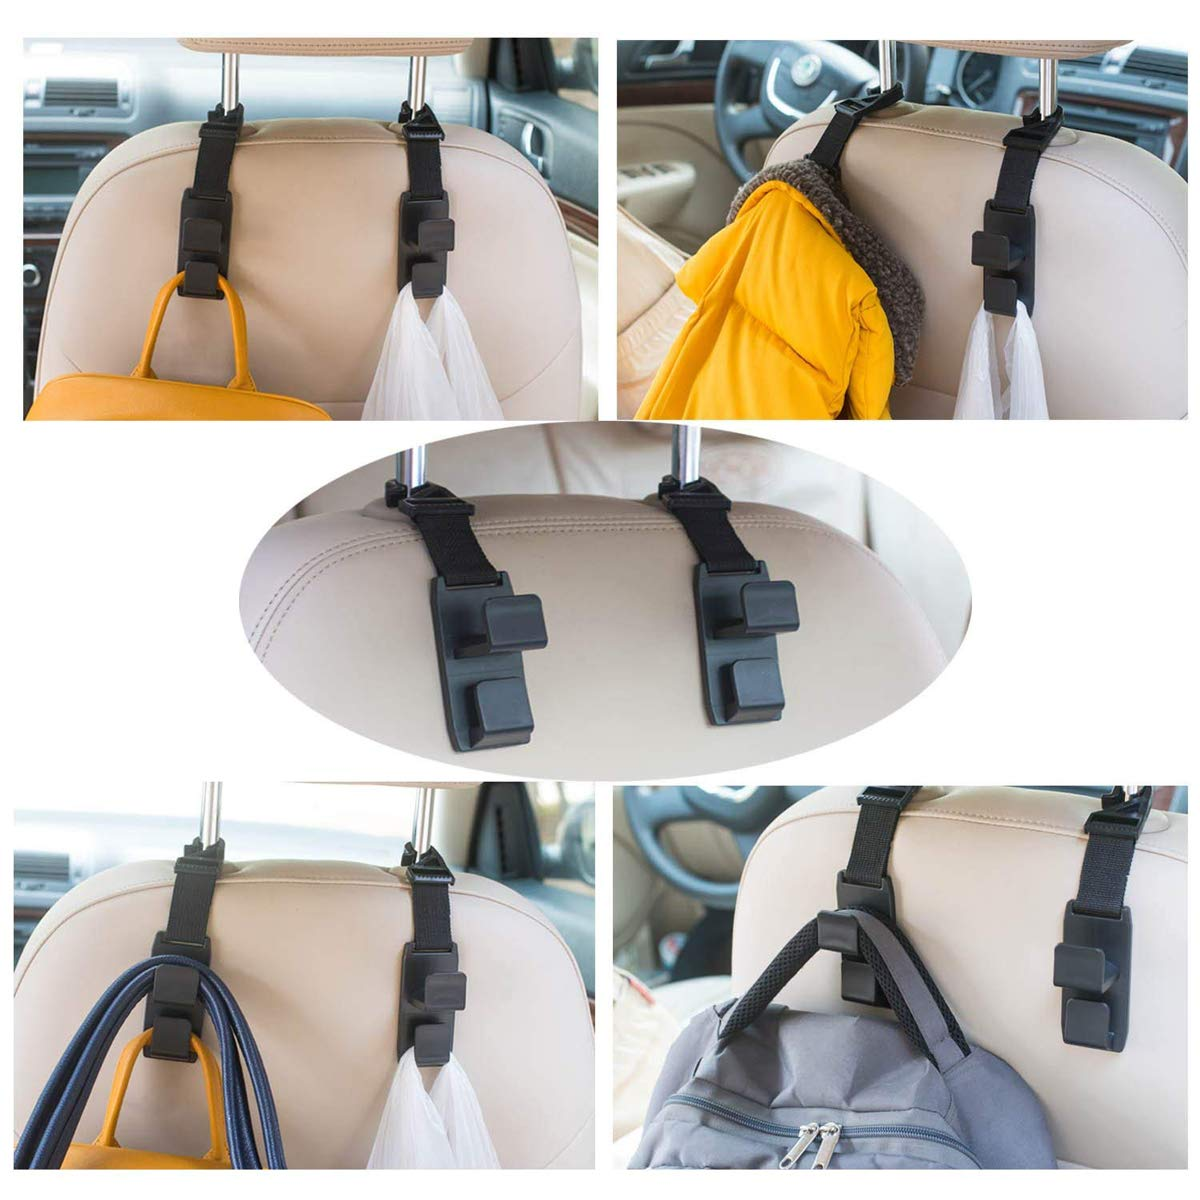 Clothes and Grocery Bags TraderPlus 4 Pack Car Seat Headrest Hooks Hanger Bottle Holder for Handbags